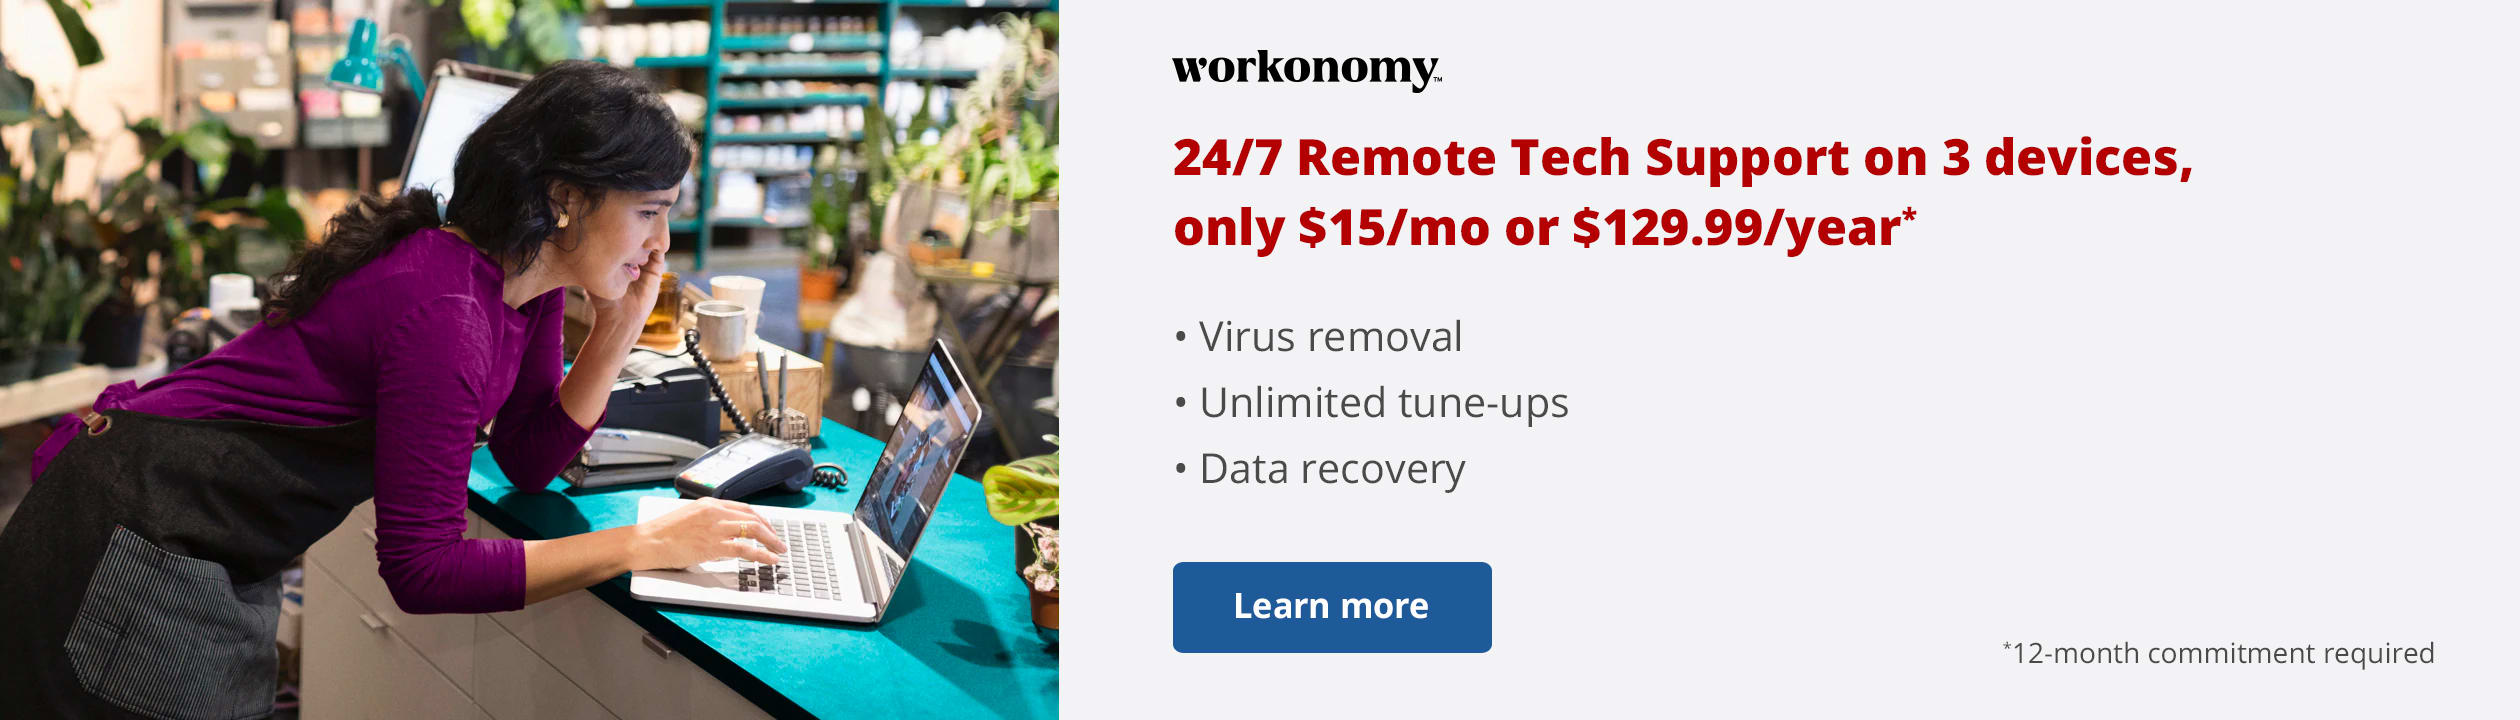 24/7 Remote Tech Support on 3 devices, only $15/mo or $129.99/year.